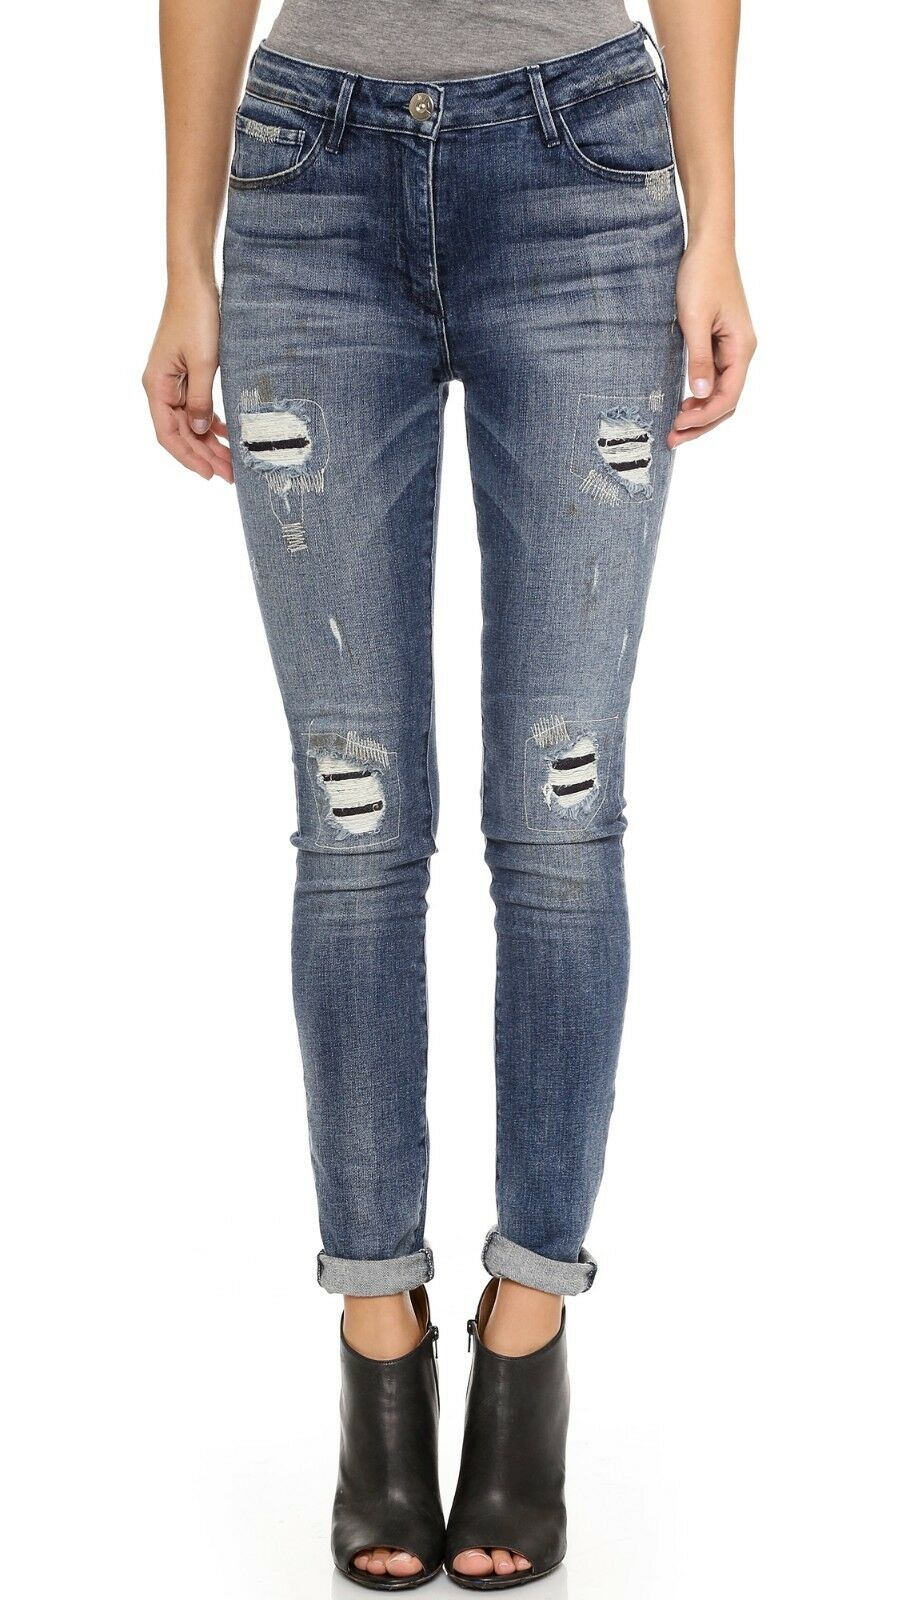 285 NEW 3x1 Jeans W3 High Rise Skinny Jean in Cypress (Mended) - Size 30